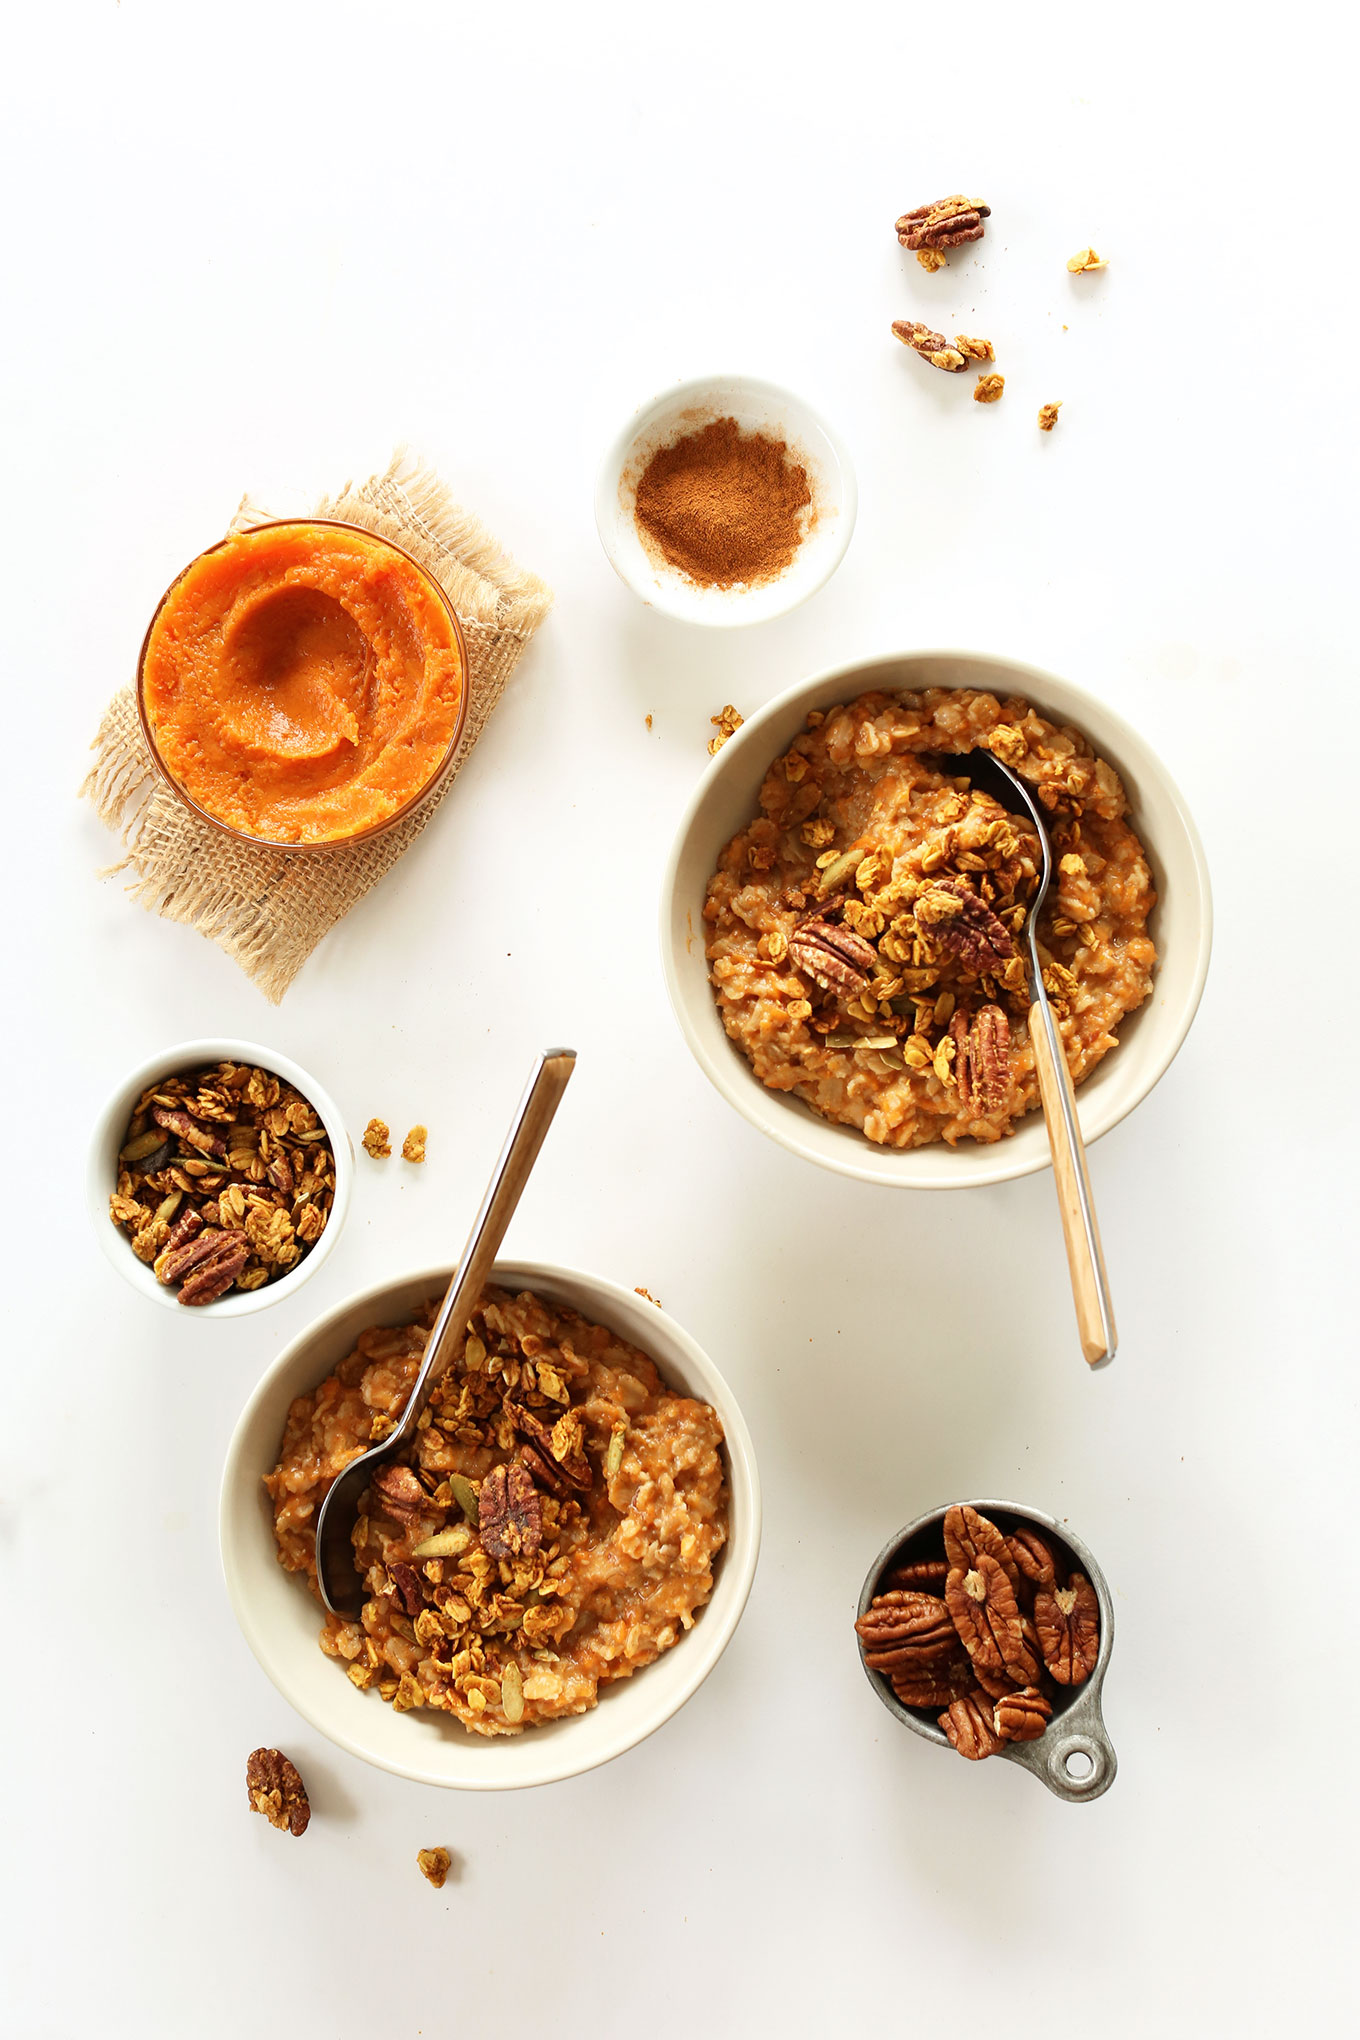 Bowls of our Sweet Potato pie Oats alongside nuts, puree, and cinnamon to make it